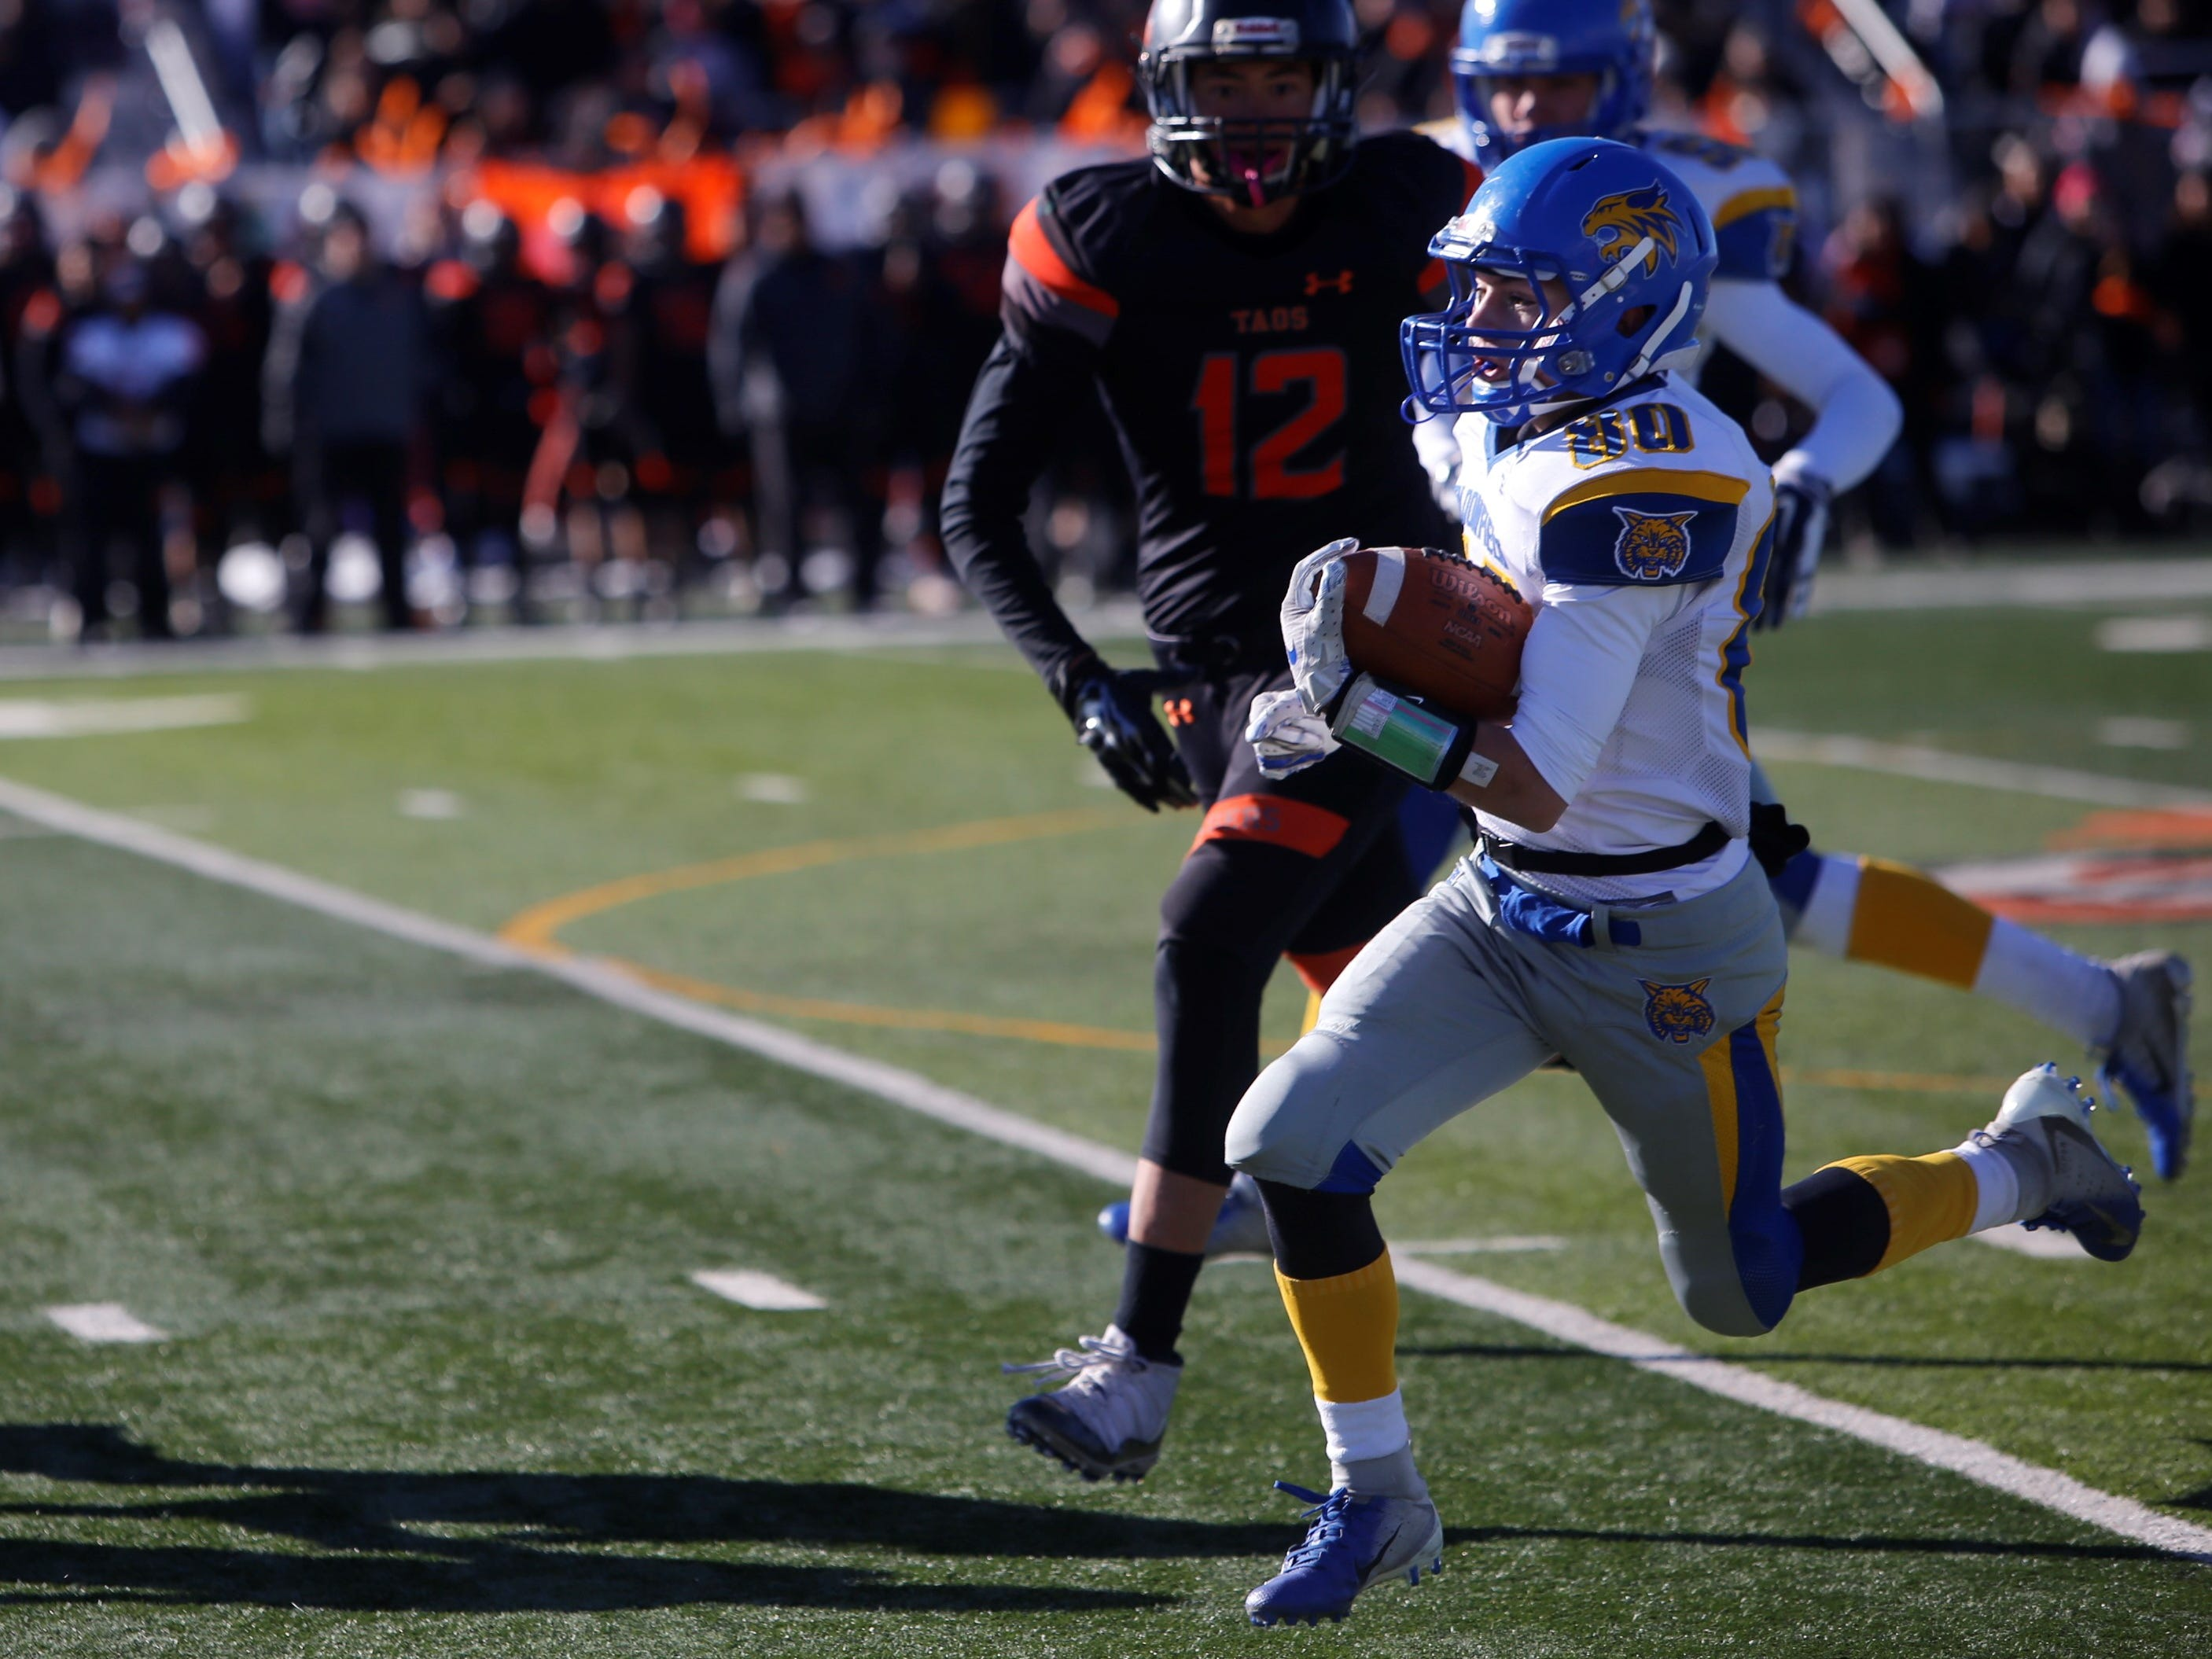 Bloomfield's Tomas Gonzales speeds downfield on a punt return against Taos defender Noah Armijo (12) during Saturday's 4A state championship game at Anaya Field in Taos.